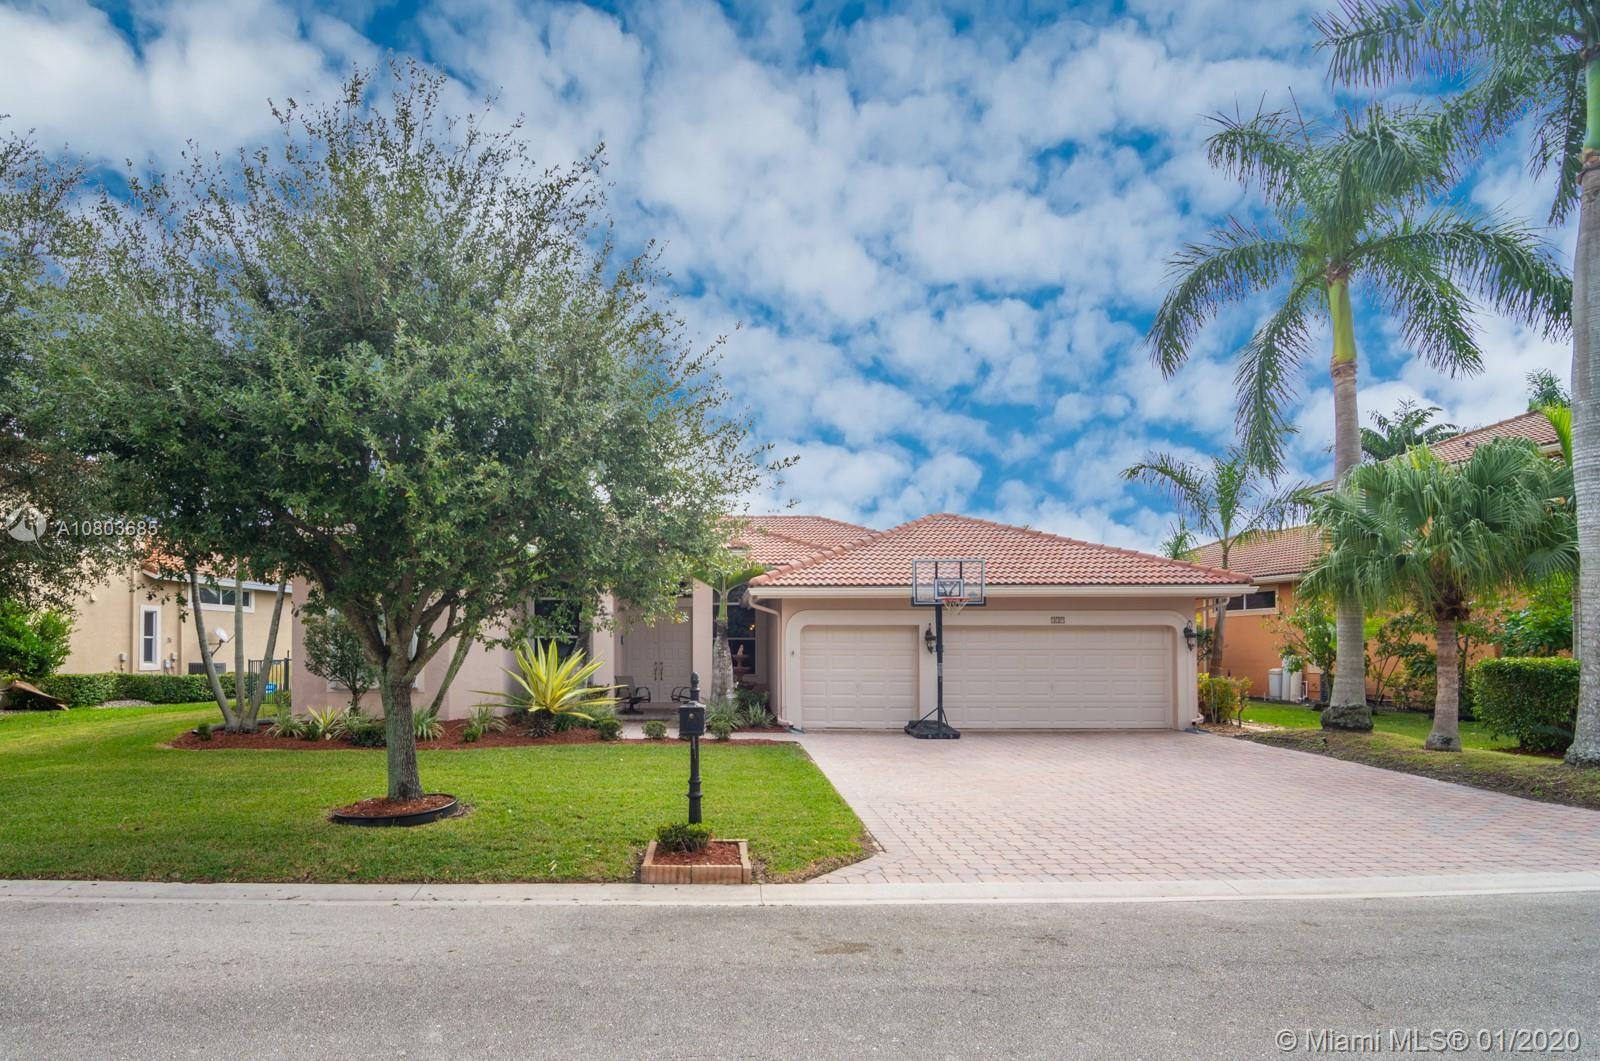 539 NW 120th Dr, Coral Springs, FL 33071